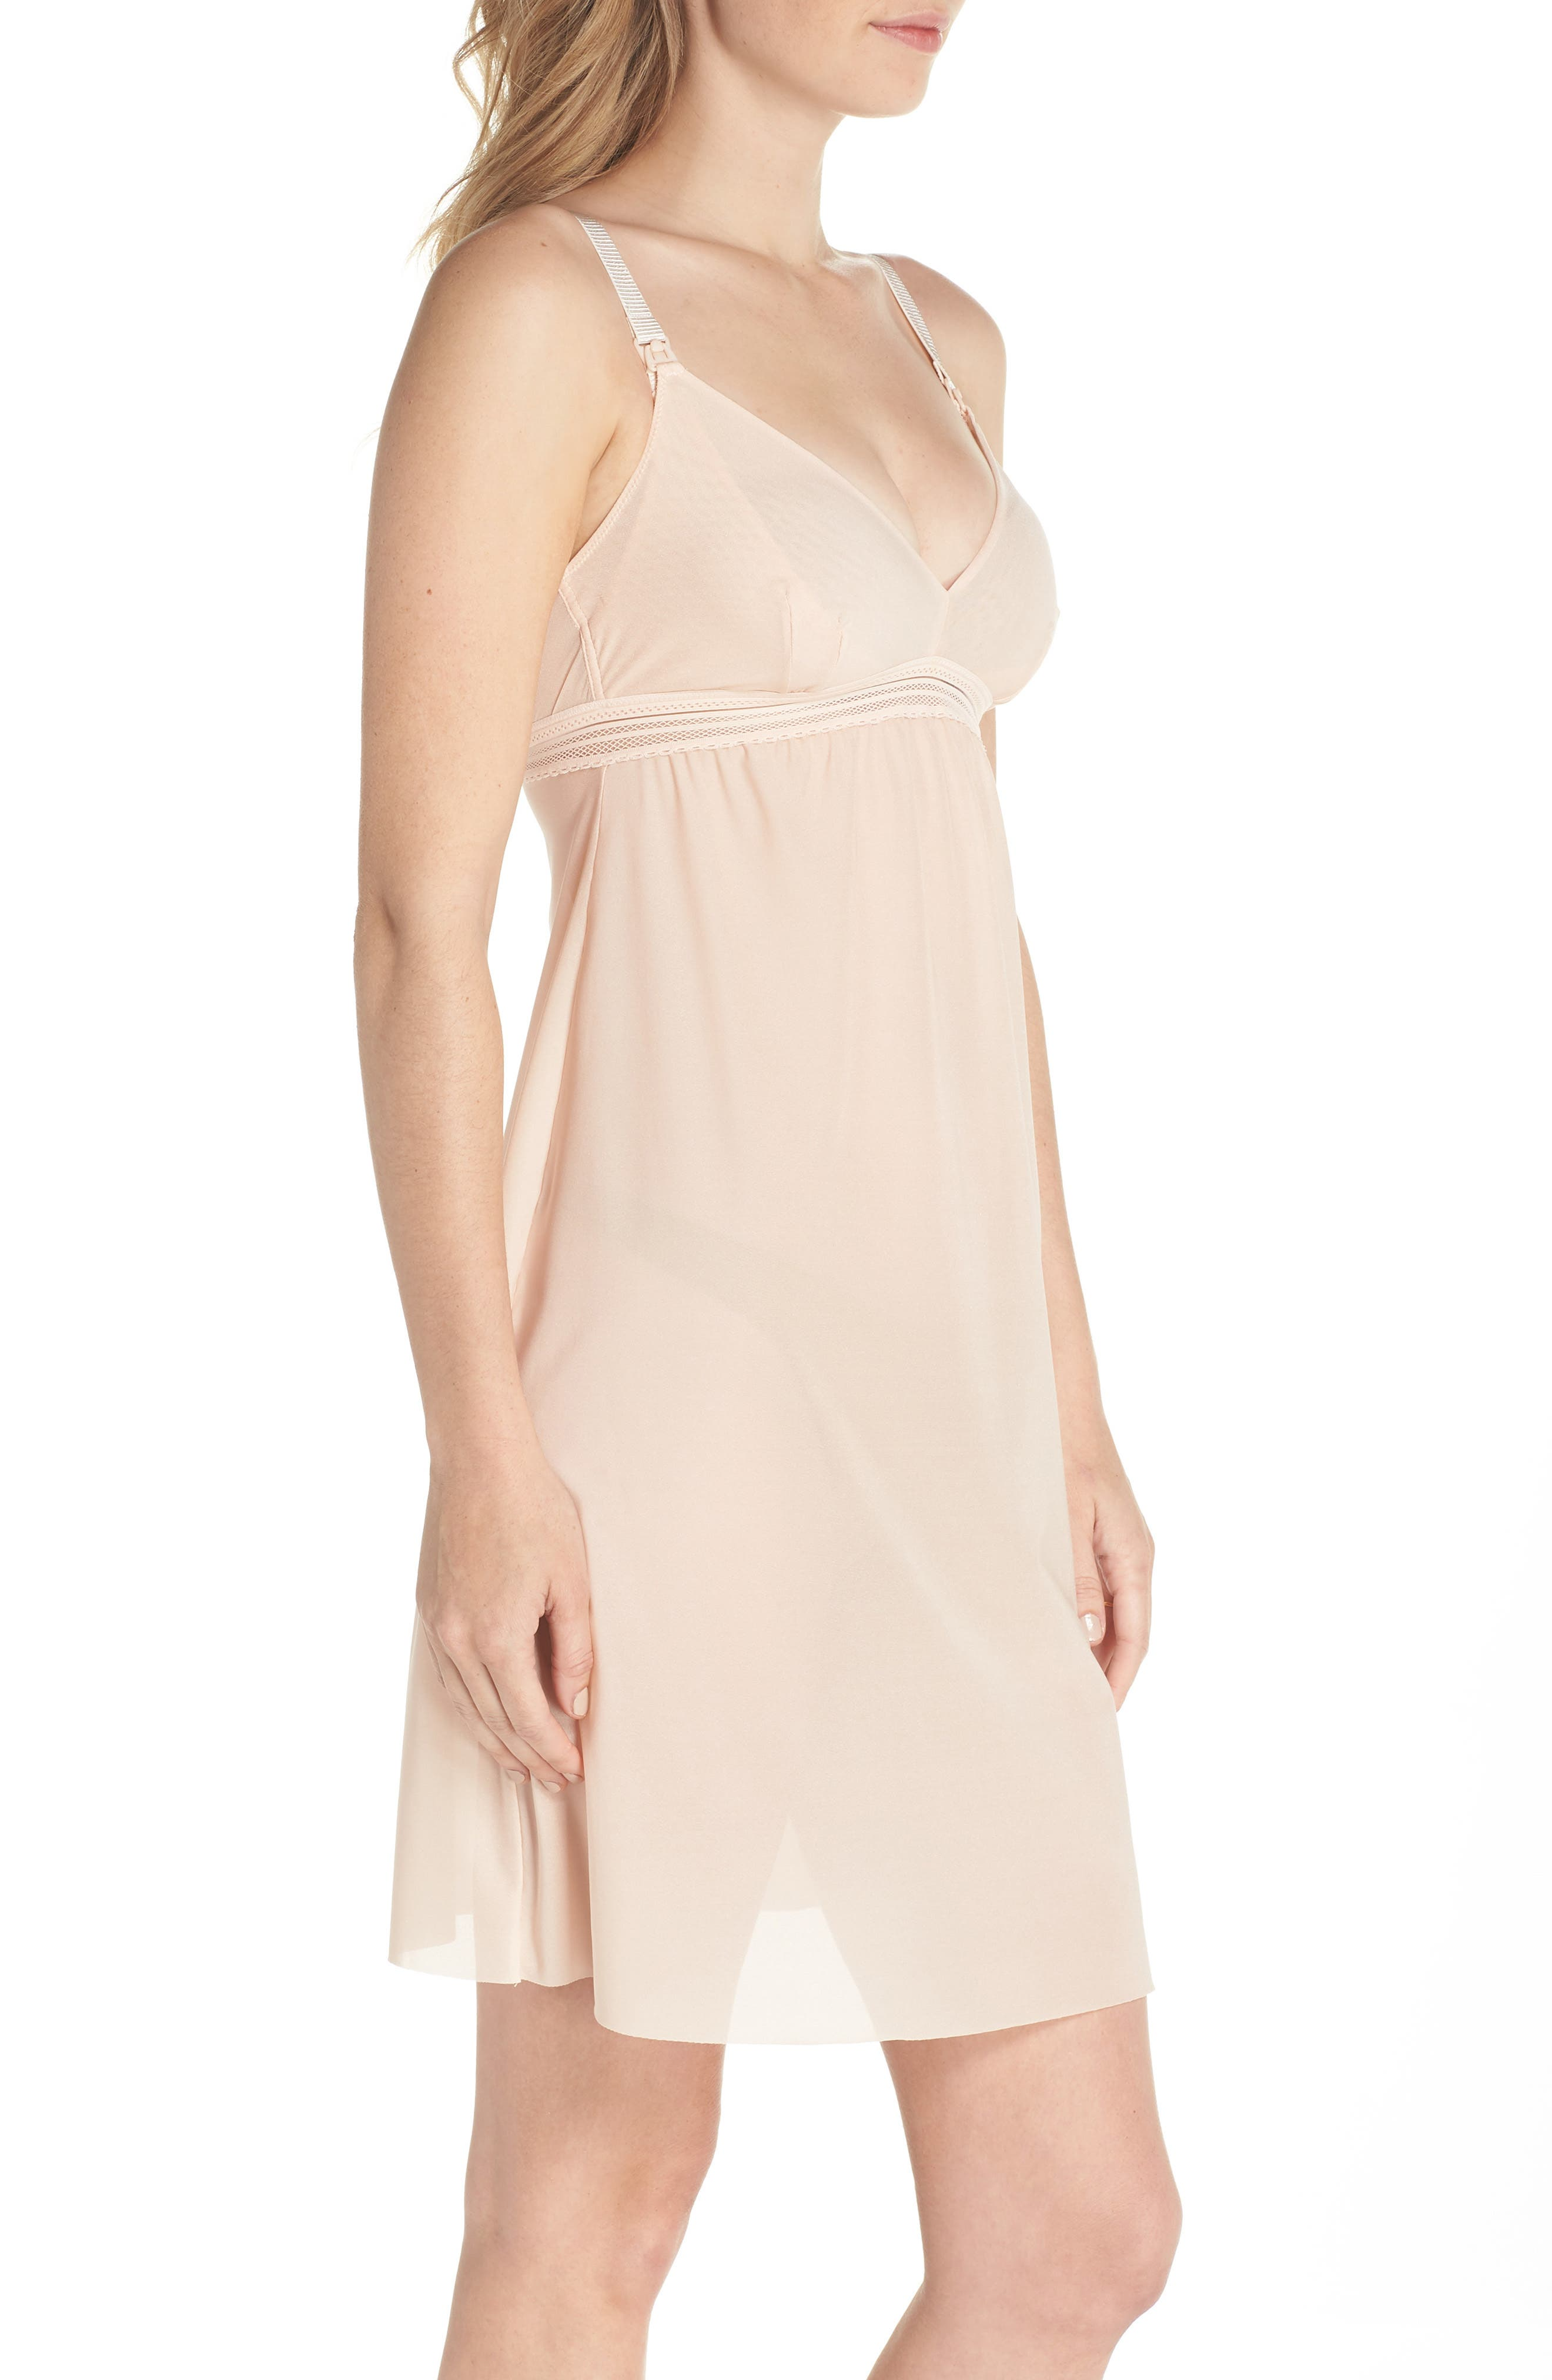 Laced In Aire Chemise,                             Alternate thumbnail 3, color,                             Nude Rose